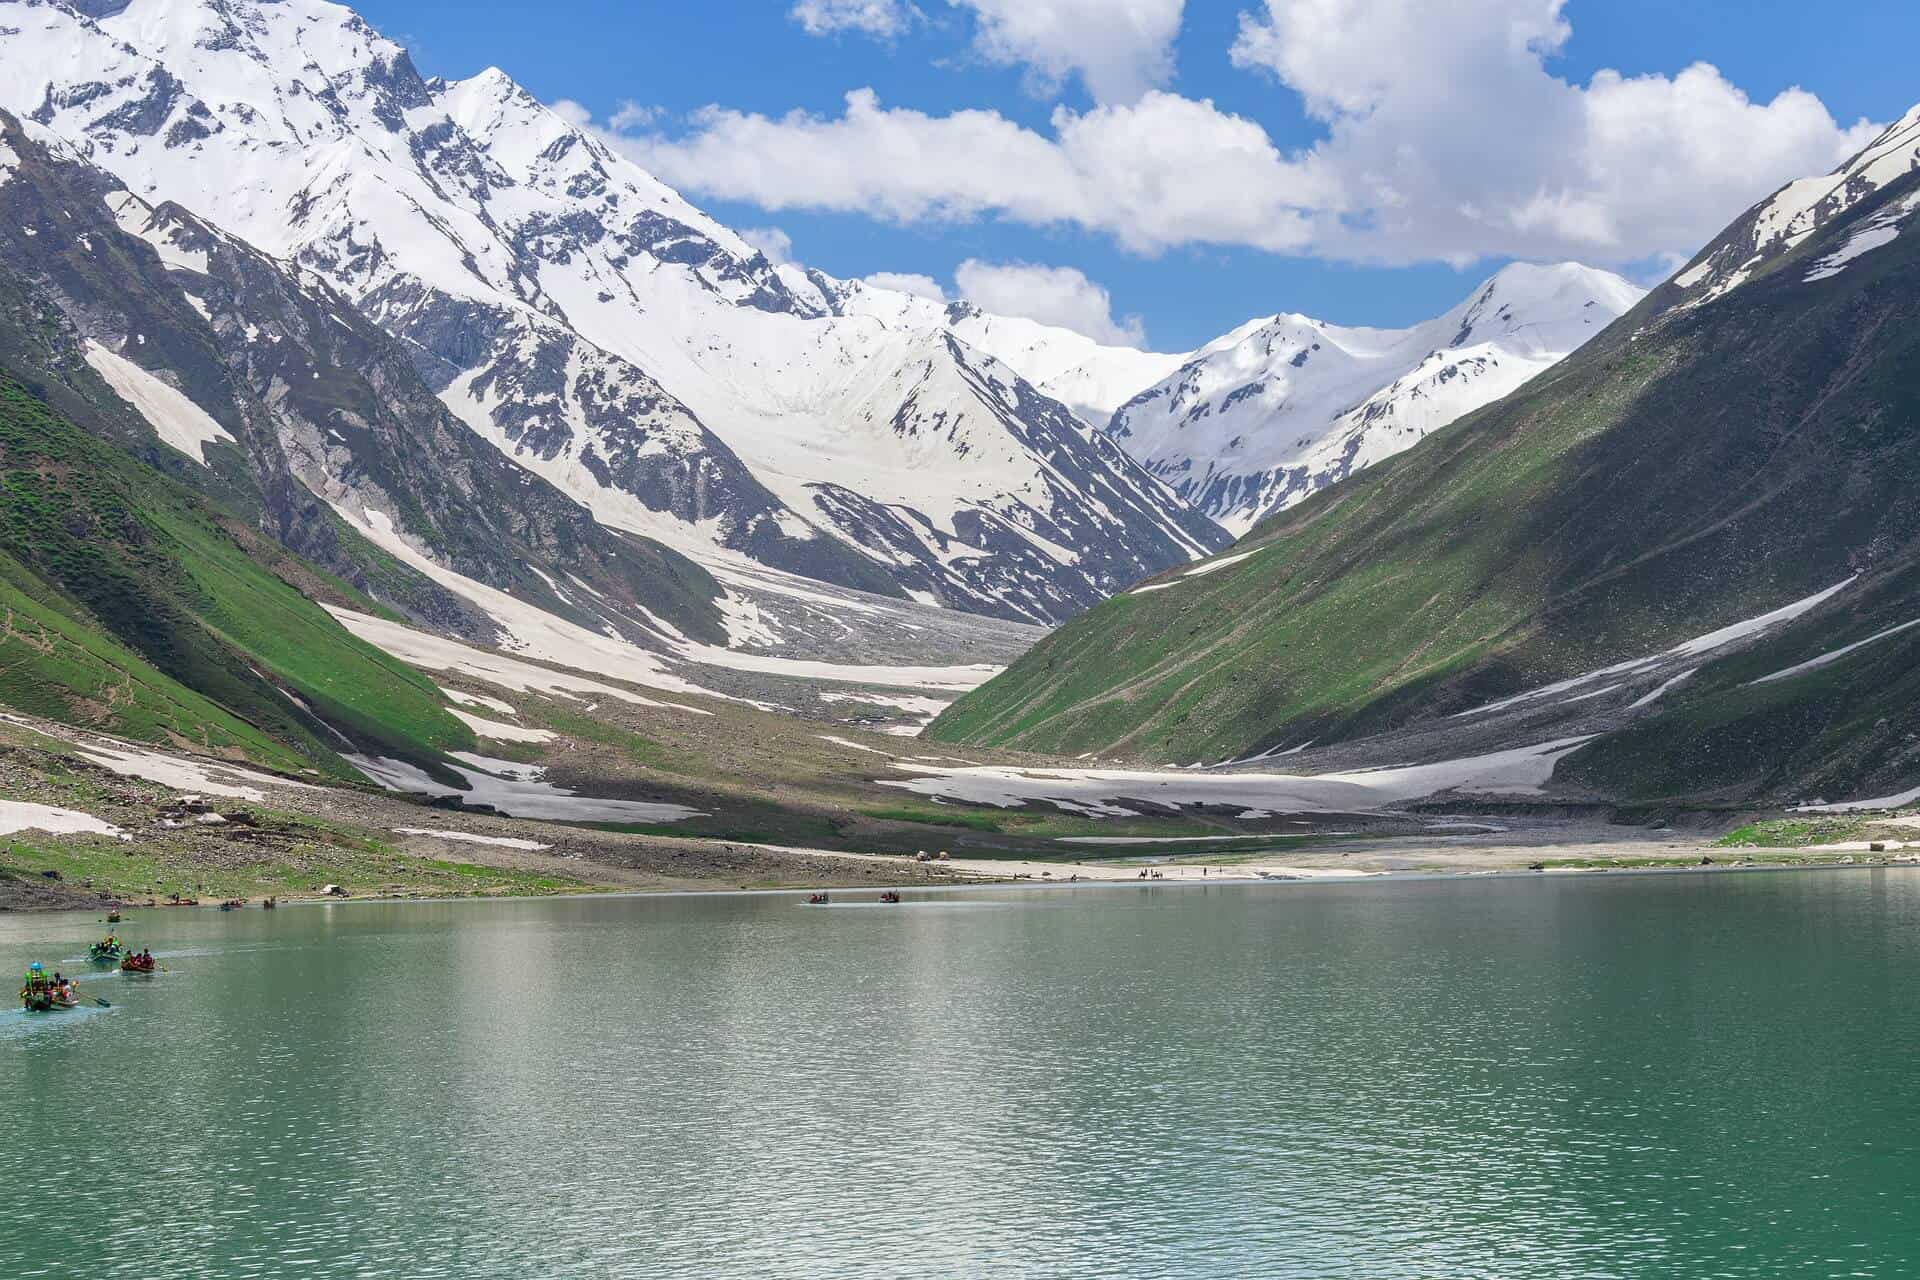 13D11N BEAUTY OF PAKISTAN-4